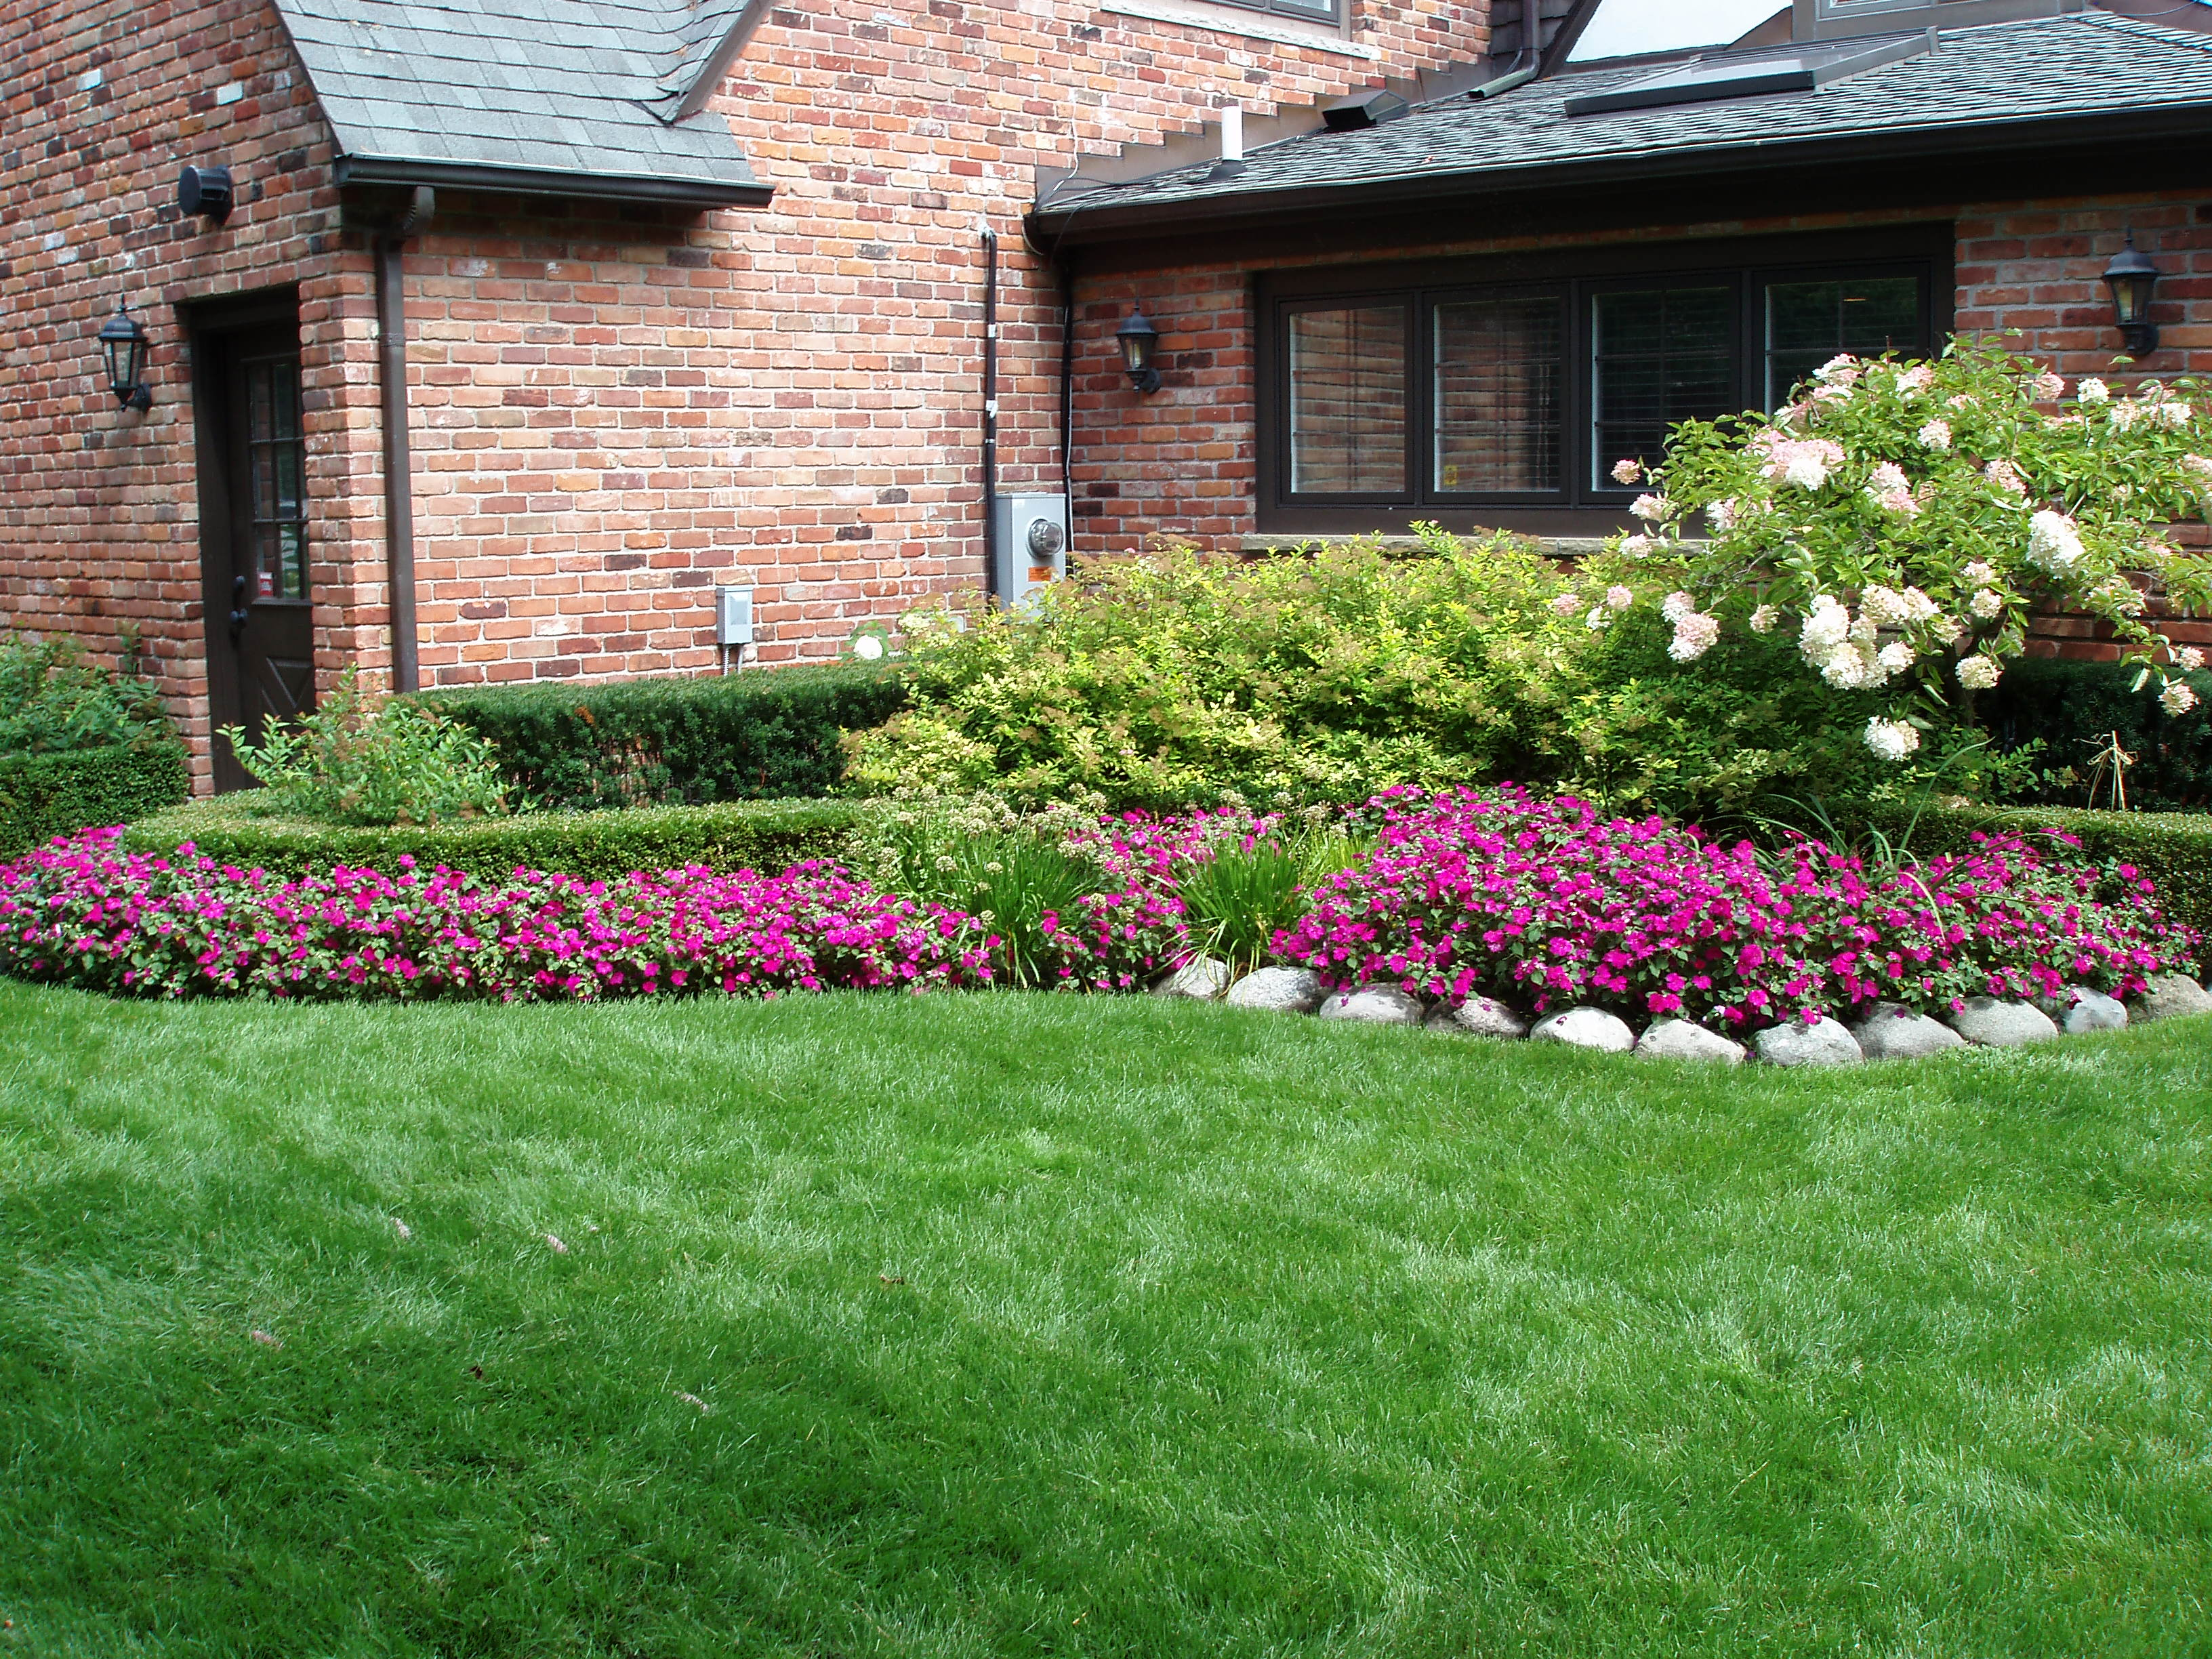 Landscaping total lawn care inc full lawn maintenance for Landscape and design